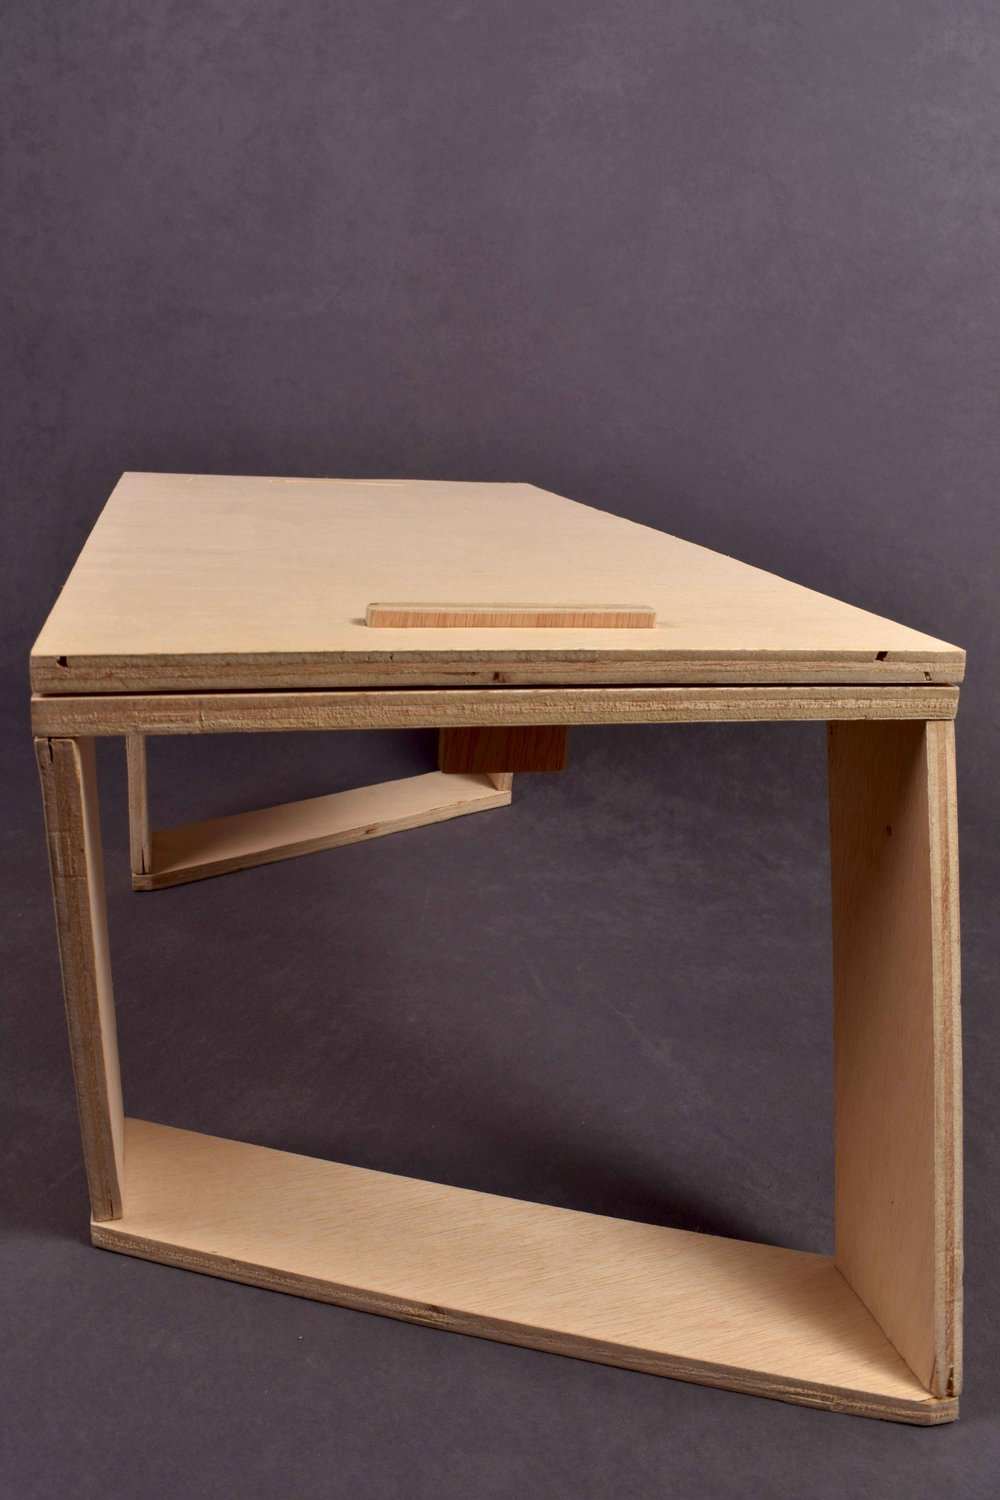 traytable-gallery03.jpg